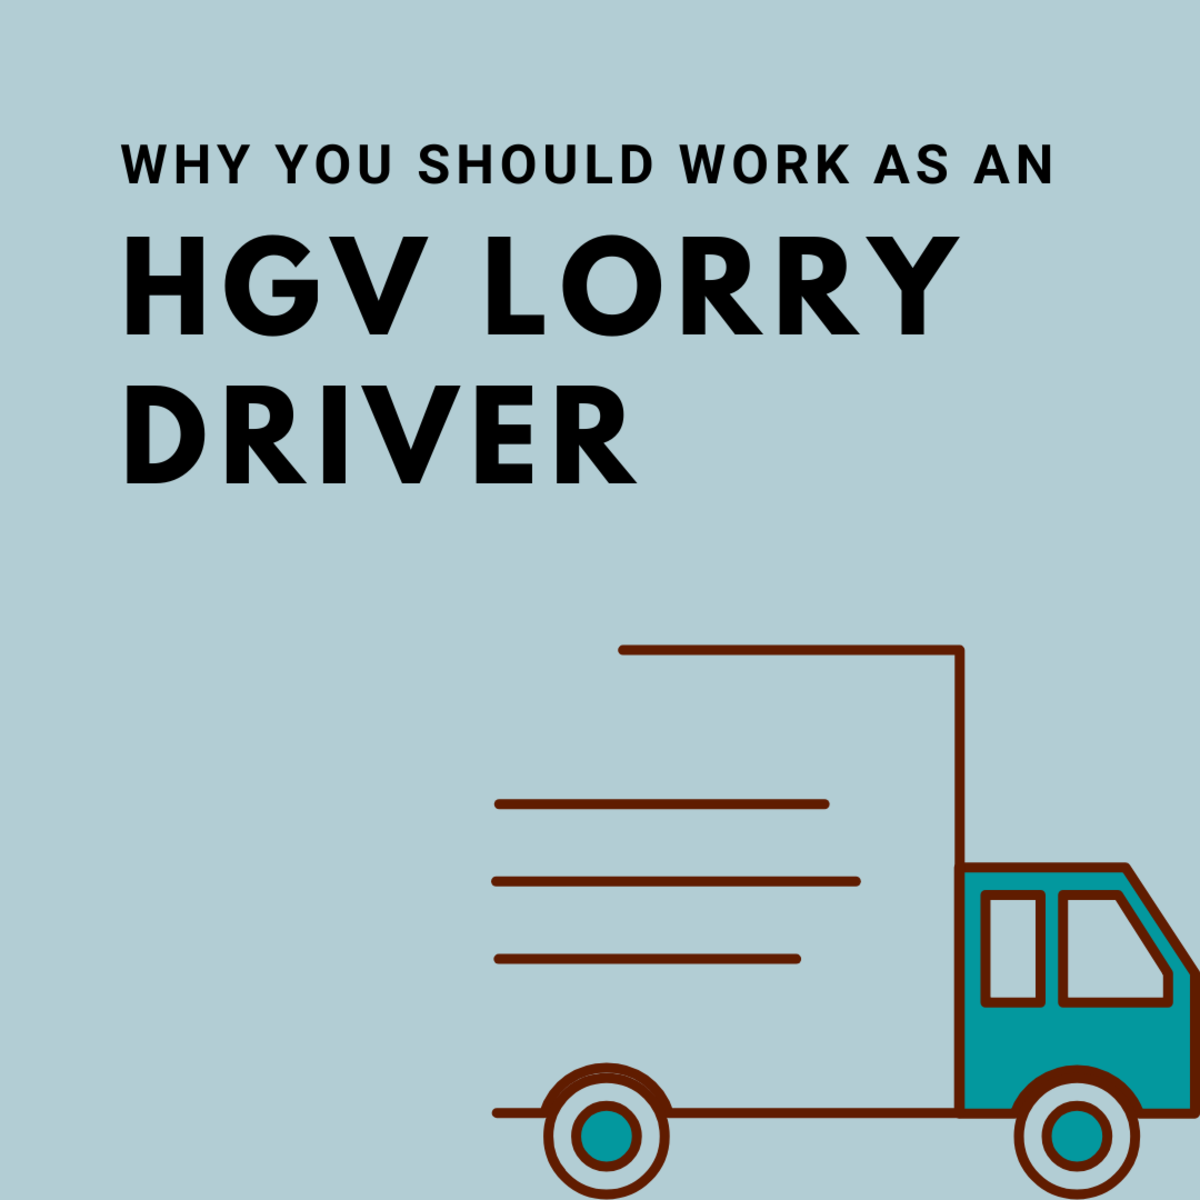 Learn what it takes to become an HGV driver and what it's like as a profession.